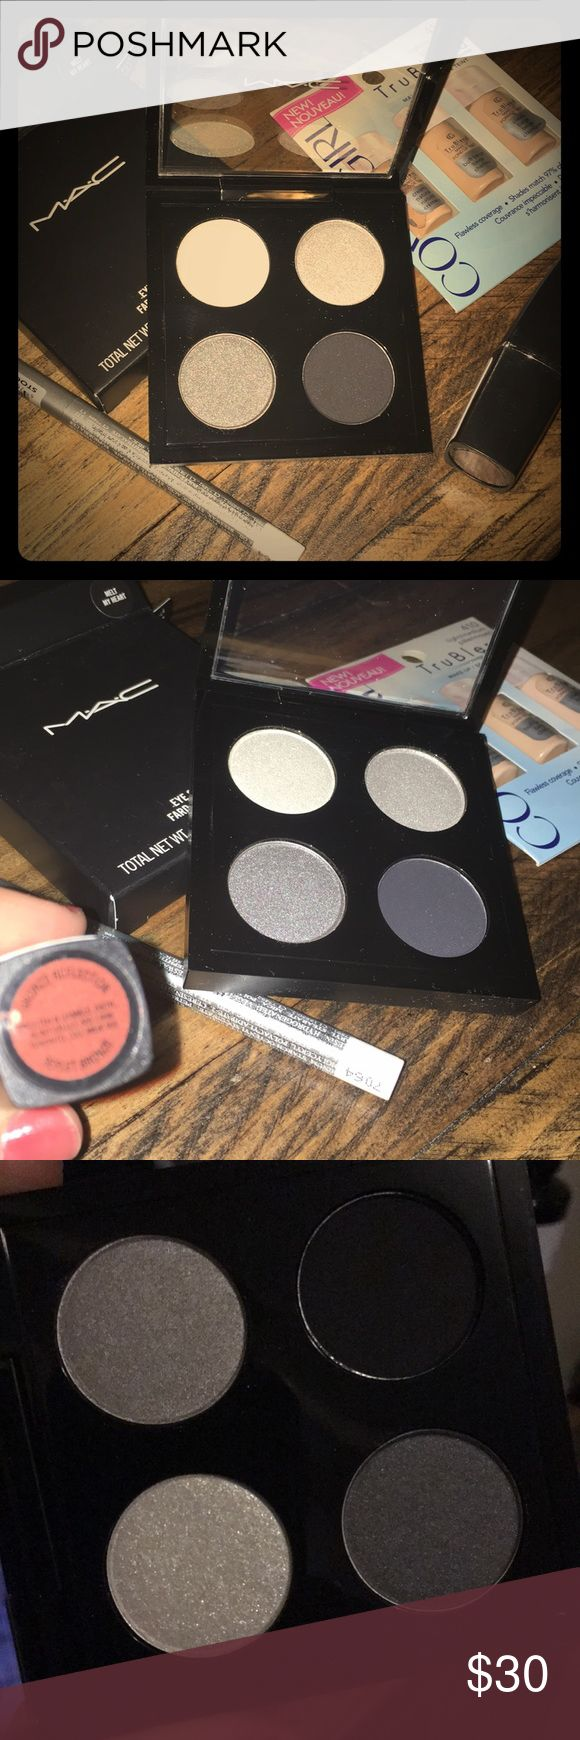 """Mac Melt My Heart Quad Bundle Mac quad discontinued in stores- Black, chrome, gunmetal, and silver eye shadows. Includes white eyeliner, foundation sampler, and lipstick all brand new Please note: one of the bundles has lipstick in photograph """"bronze reflection"""" and the other will have a new lipstick but different shade- it's unlabeled, but is gold-ish MAC Cosmetics Makeup Eyeshadow"""